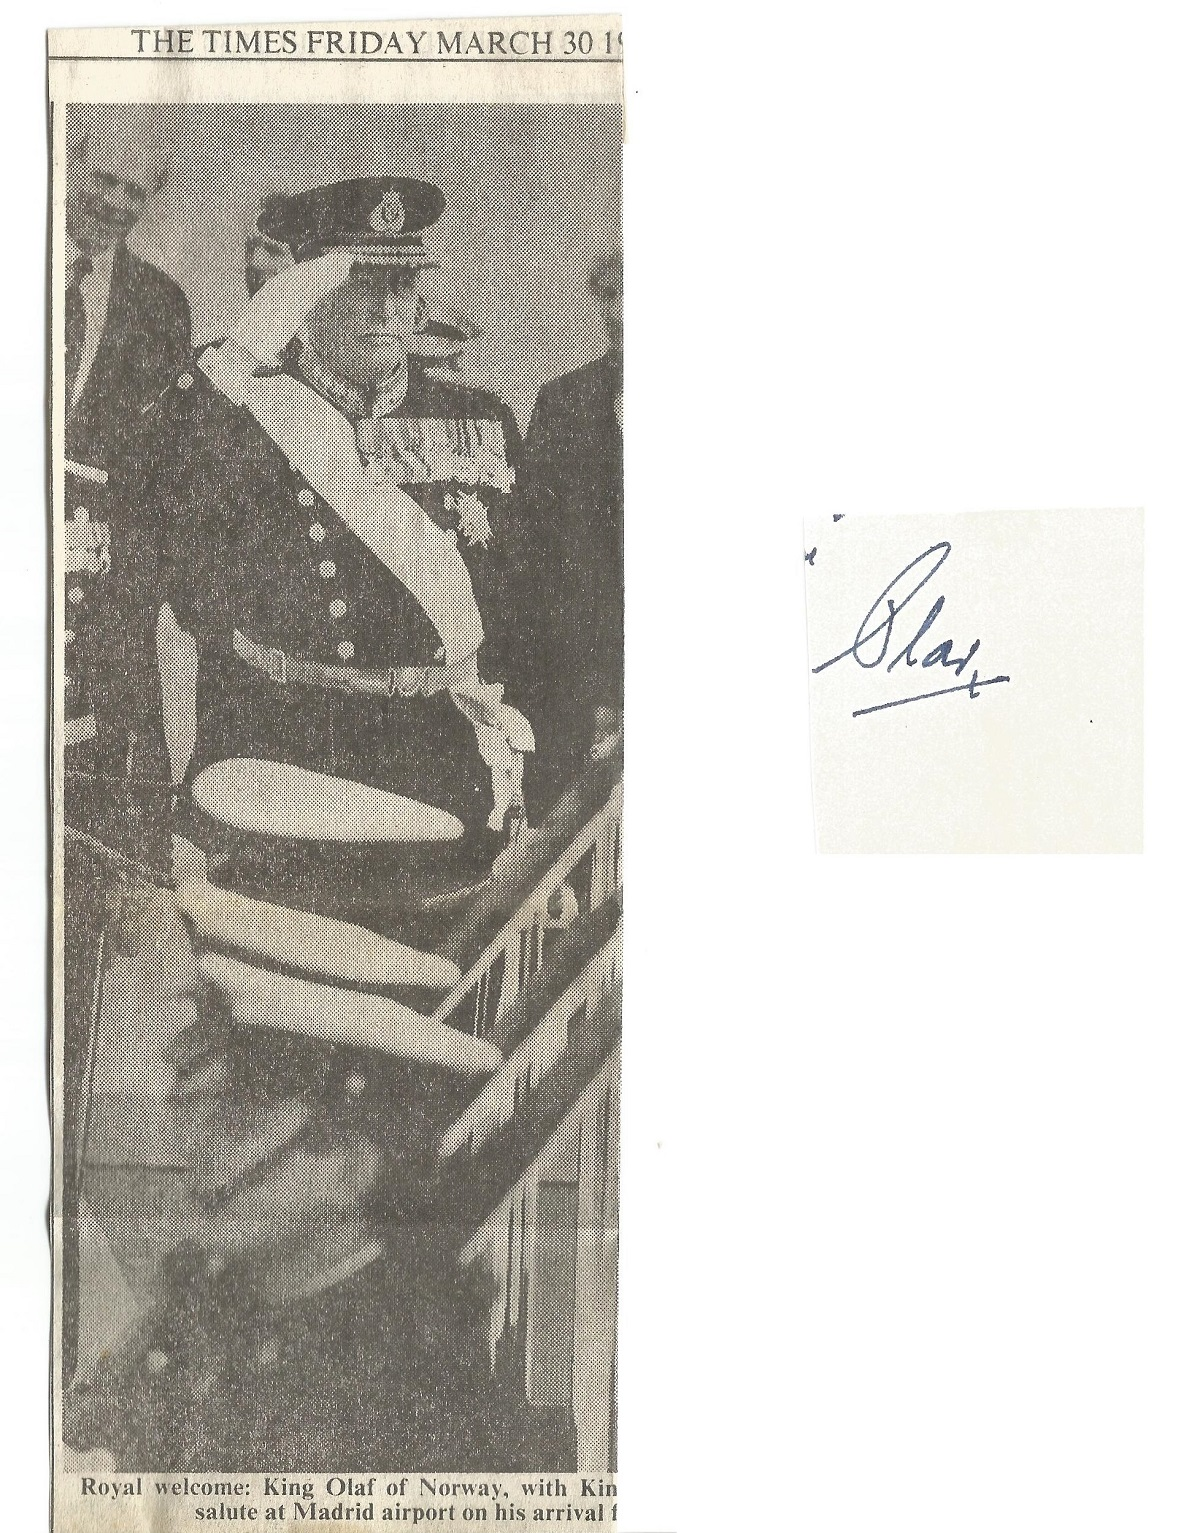 King Olav or Norway signature on approx. 2 x 2 card. Includes newspaper clipping from The Times